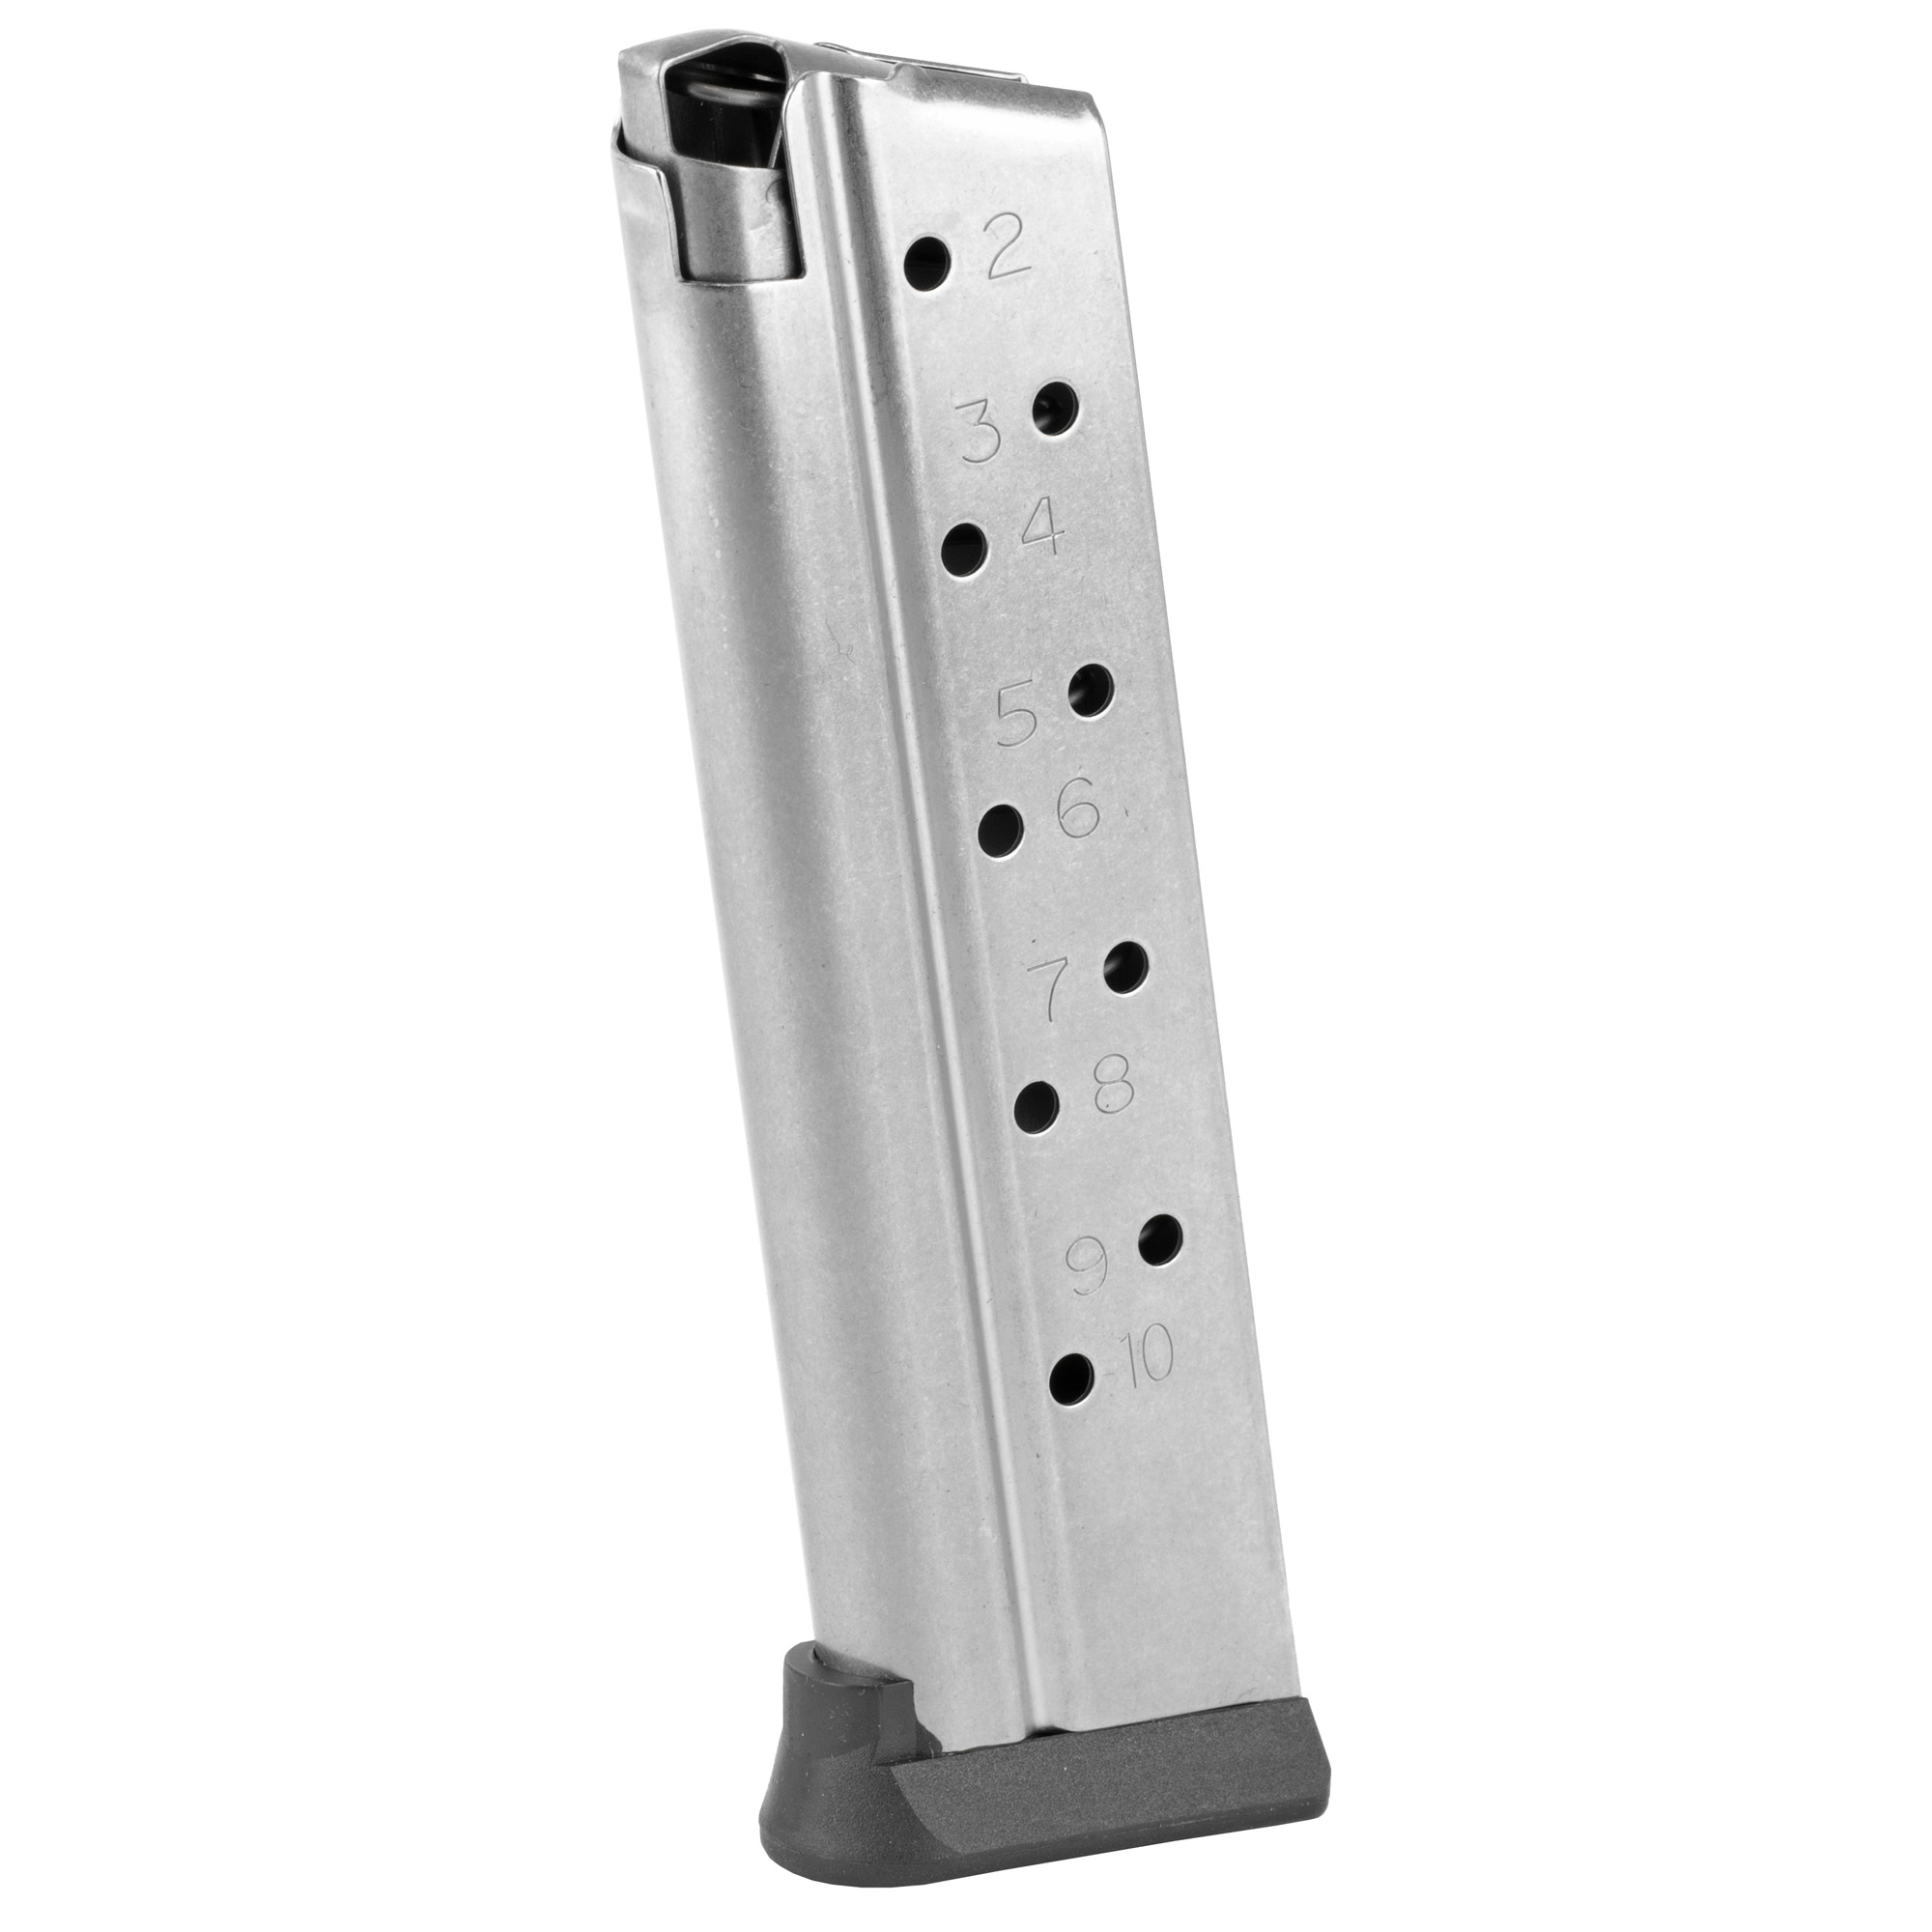 """The Rock Island Armory 1911 Full Size Magazine is a standard factory replacement magazine. This magazine is for single stack 1911 models chambered in 22TCM and holds 10 rounds of ammunition. It is made of steel and is made to Armscor/Rock Island Armory specifications and tolerances"""" using the same manufacturing and materials as the original equipment magazines"""" ensuring perfect fit and operation."""